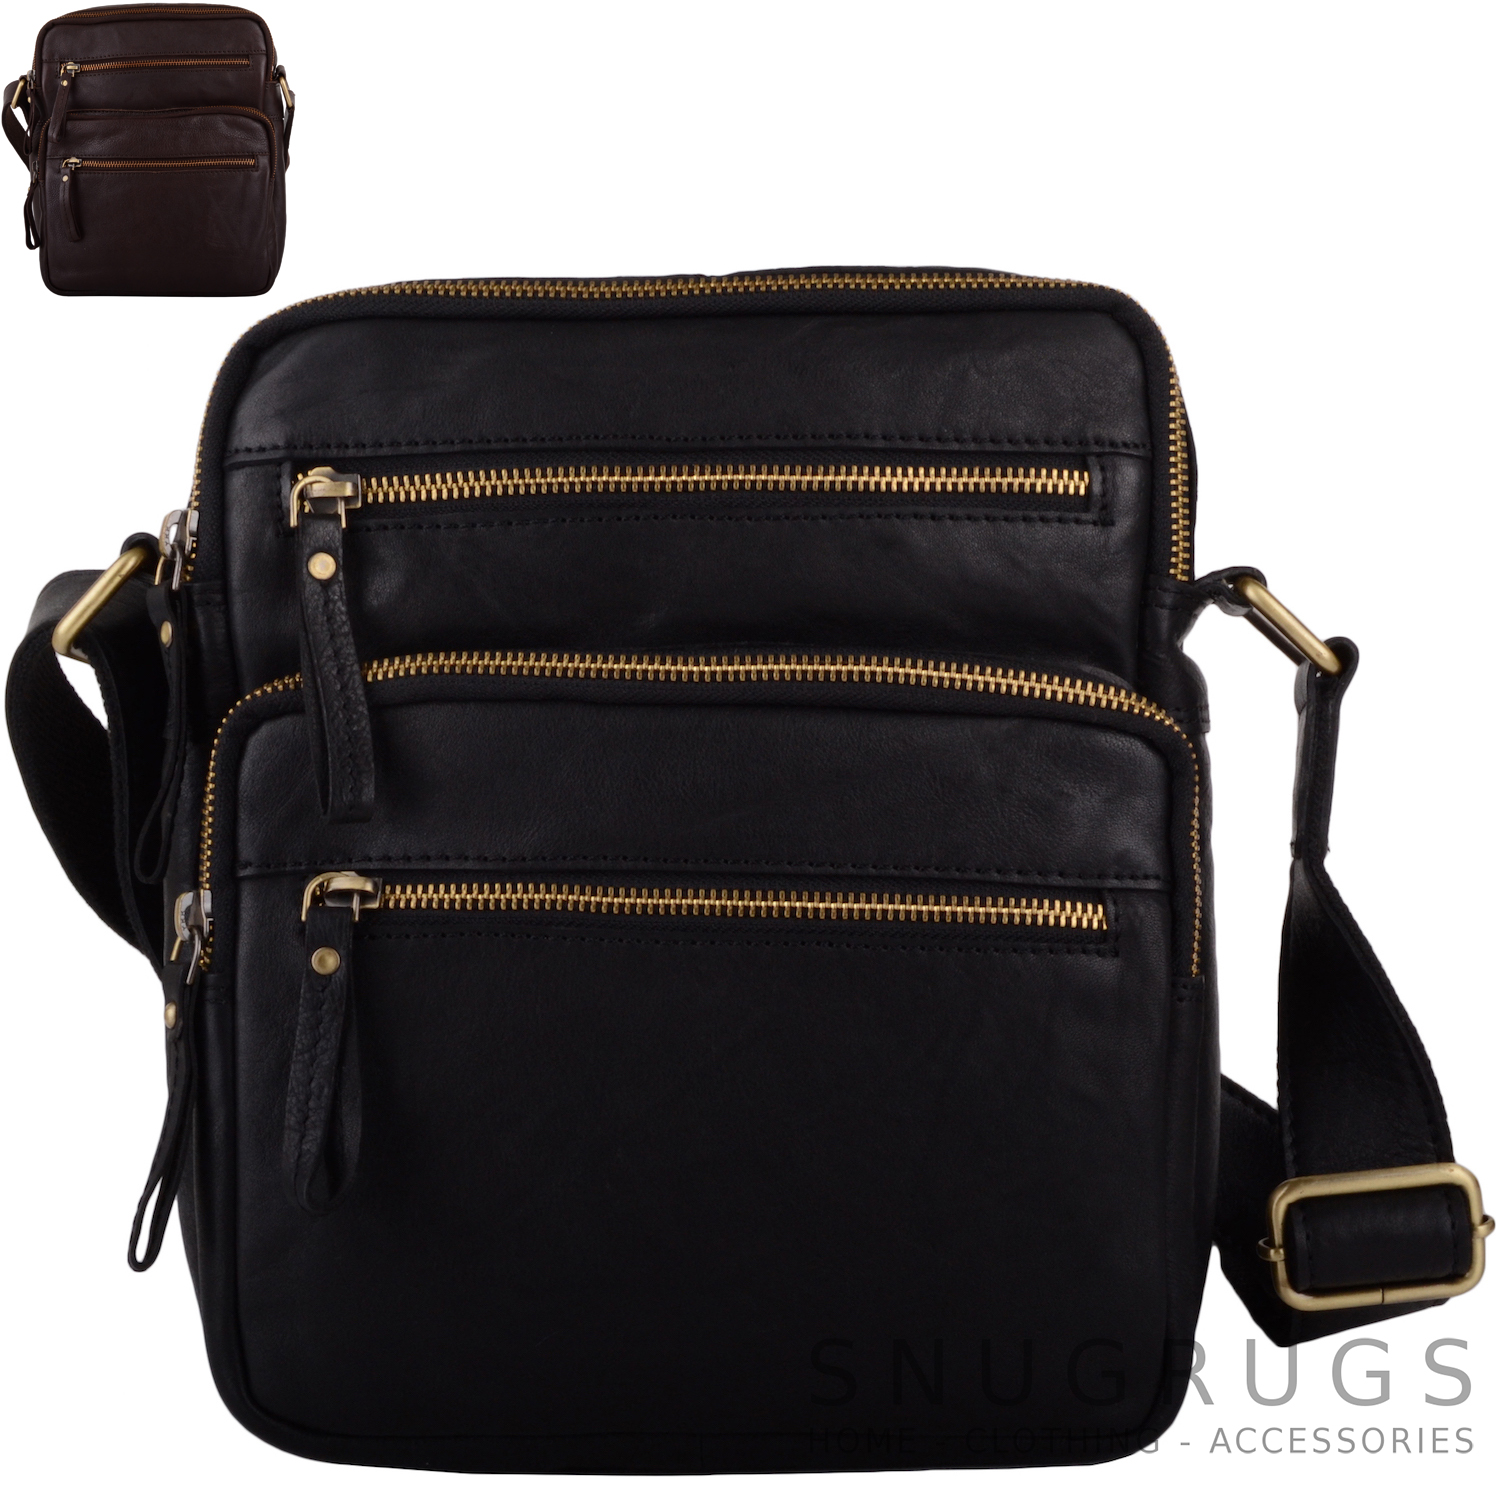 6fbd1e614 Mens Leather Professional Bags For Work | Building Materials Bargain ...